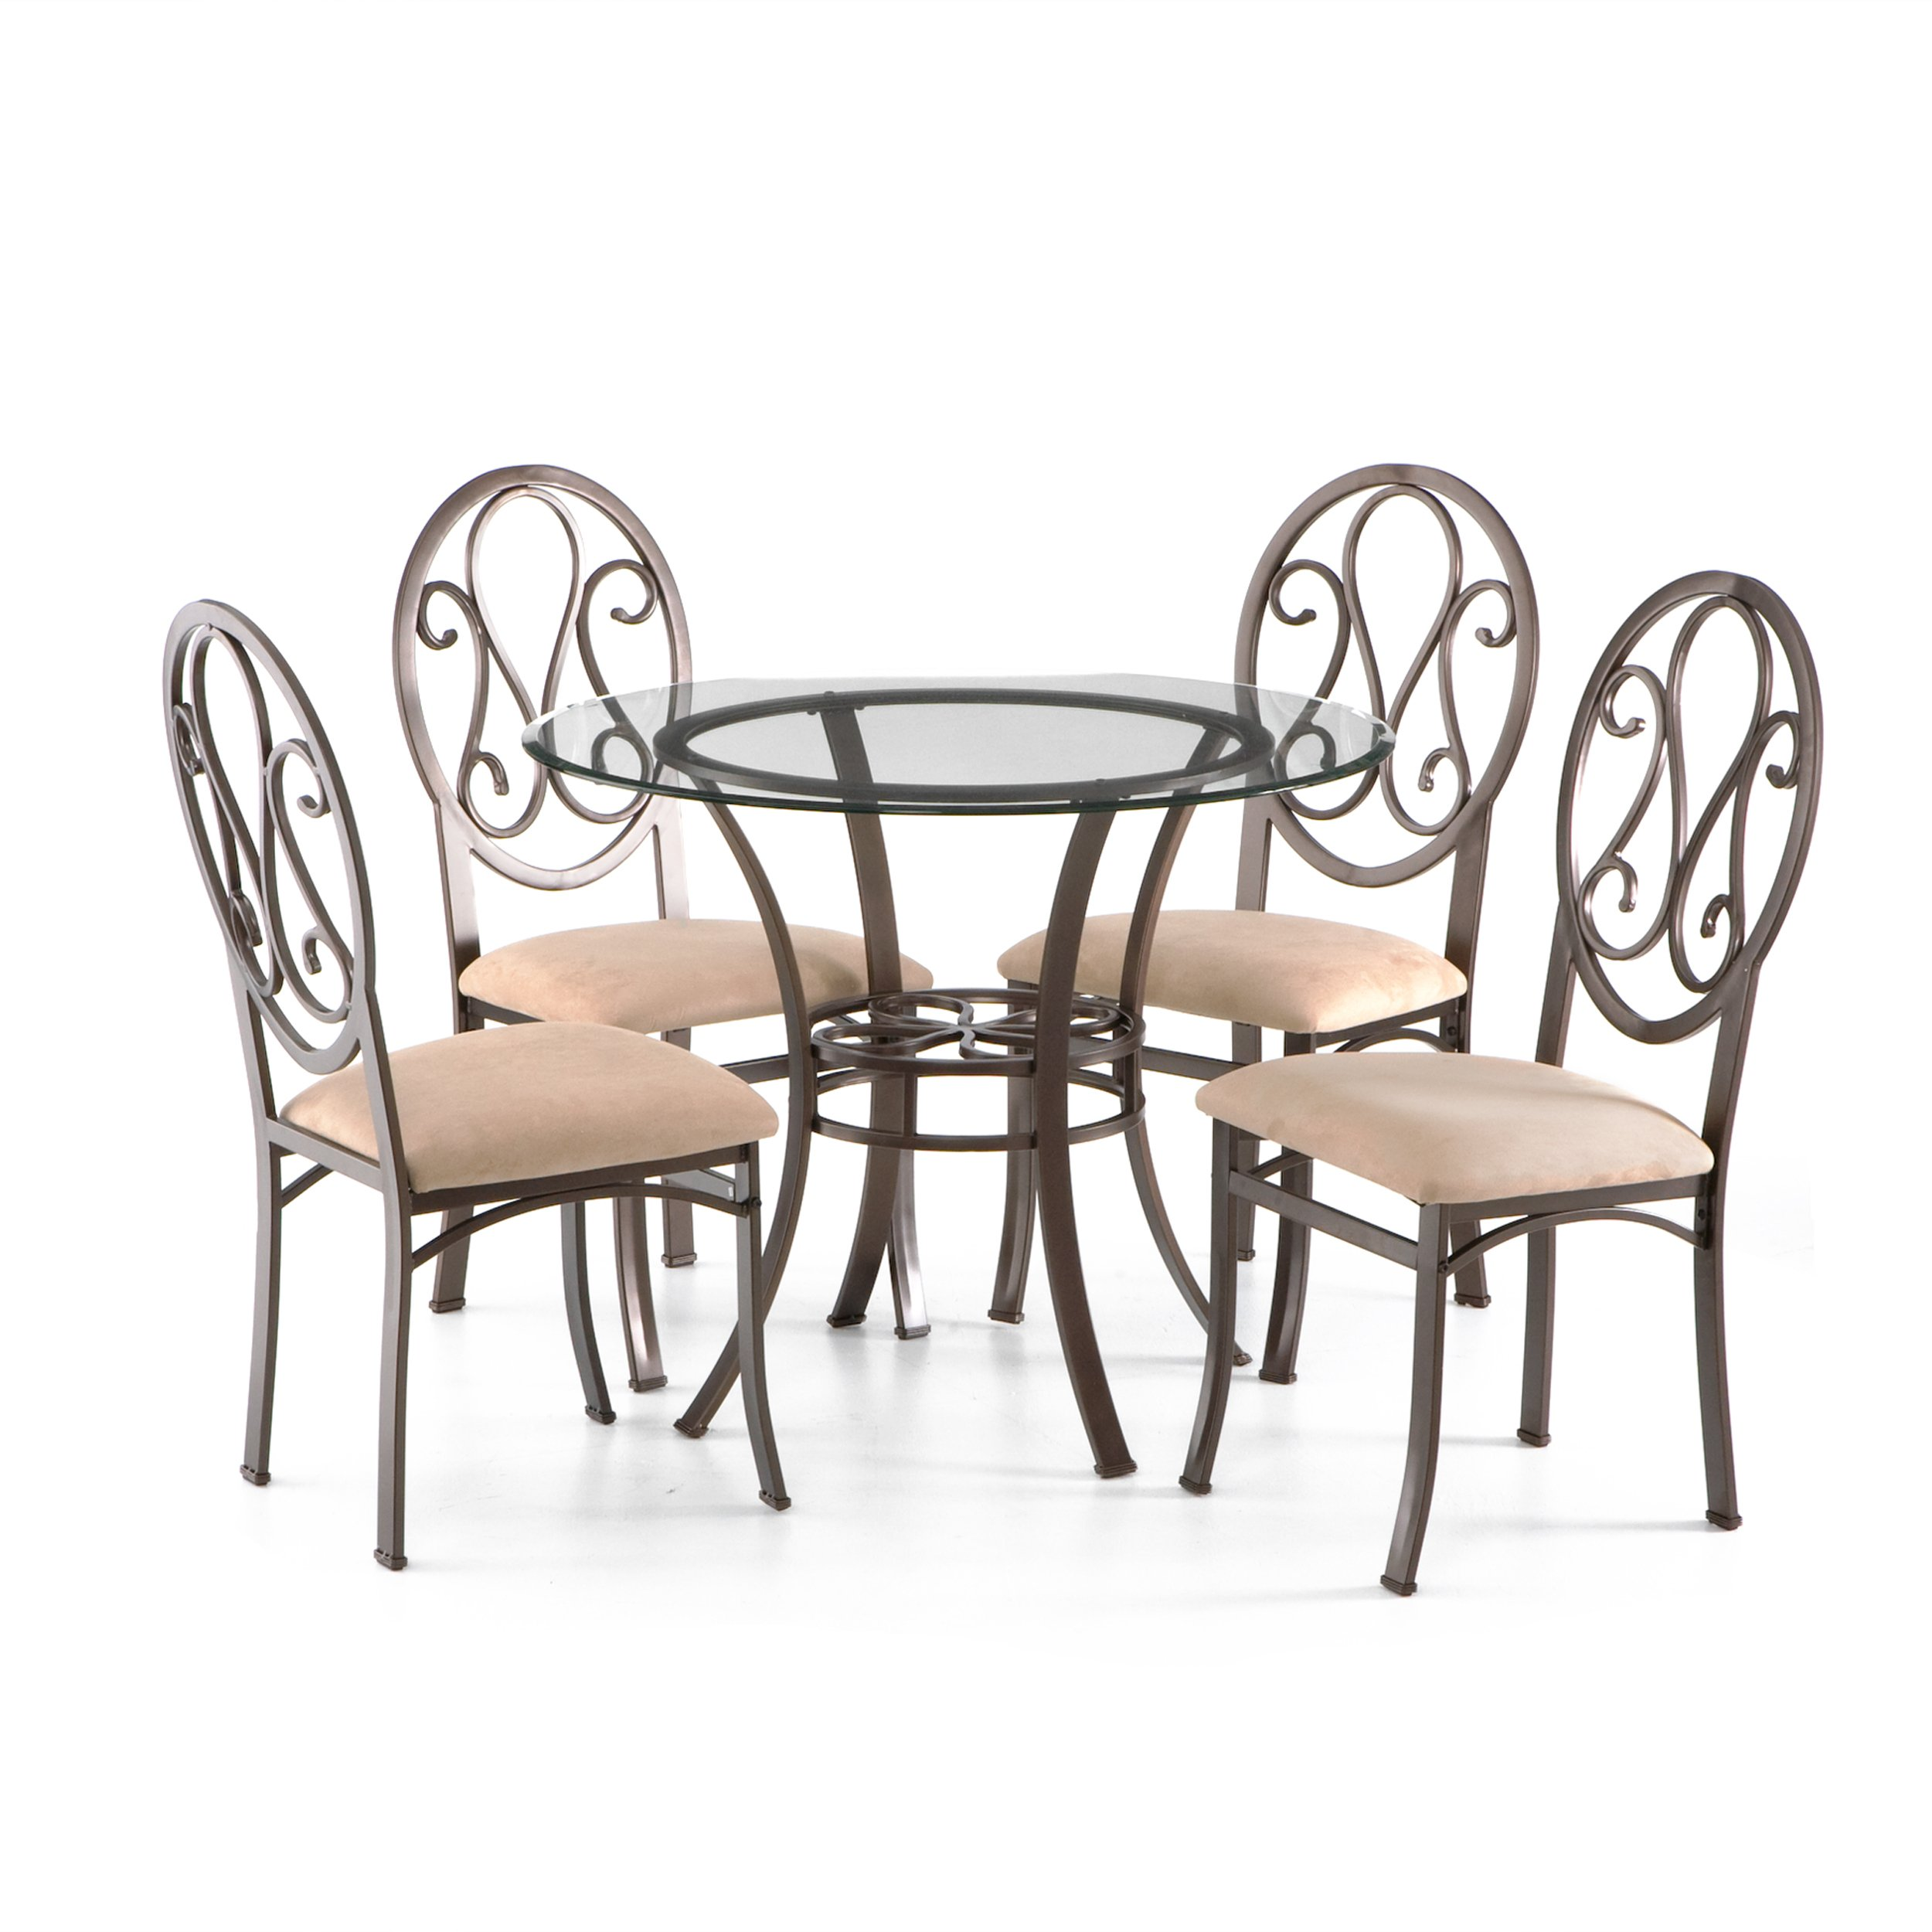 Southern Enterprises Lucianna Glass Top Dining Table, Dark Brown Finish by Southern Enterprises (Image #5)